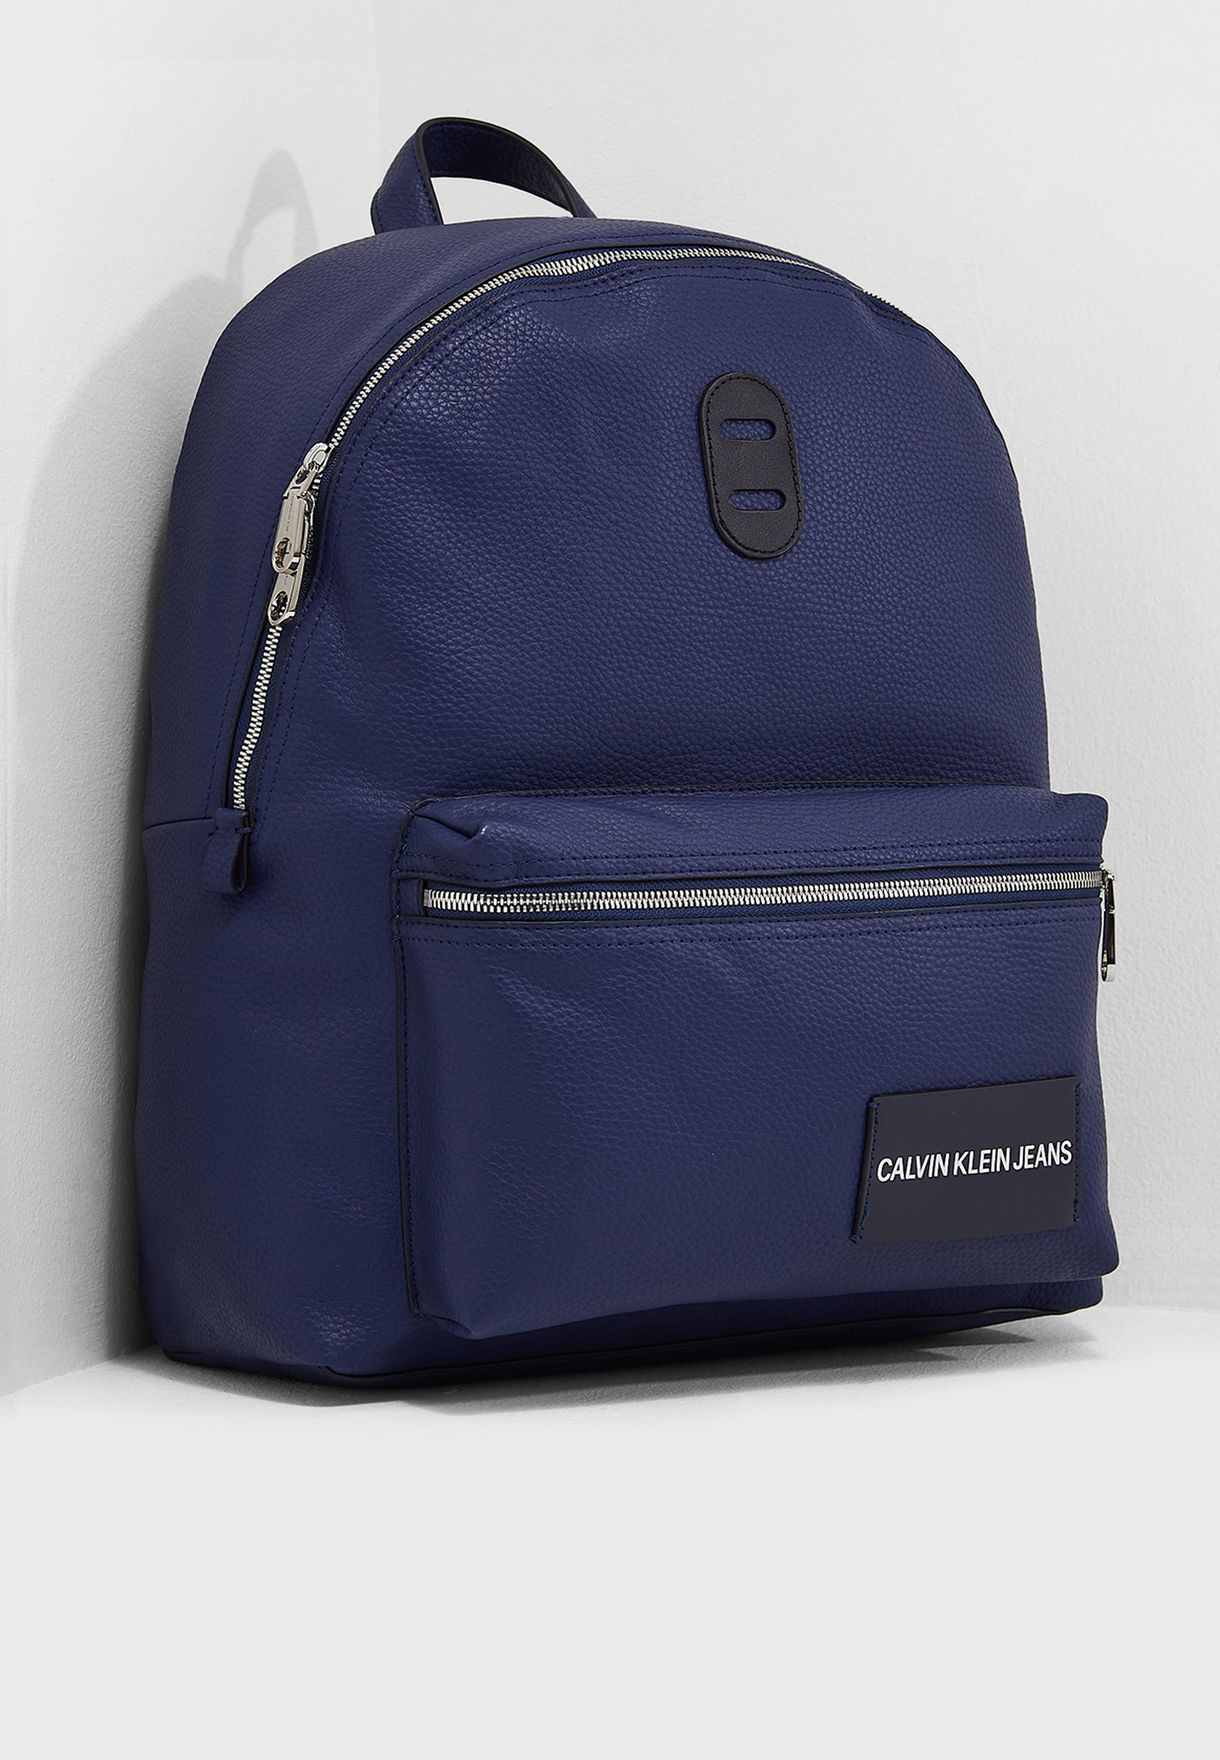 644f6db30596 Shop Calvin Klein Jeans navy Pebble Essential Campus Backpack ...